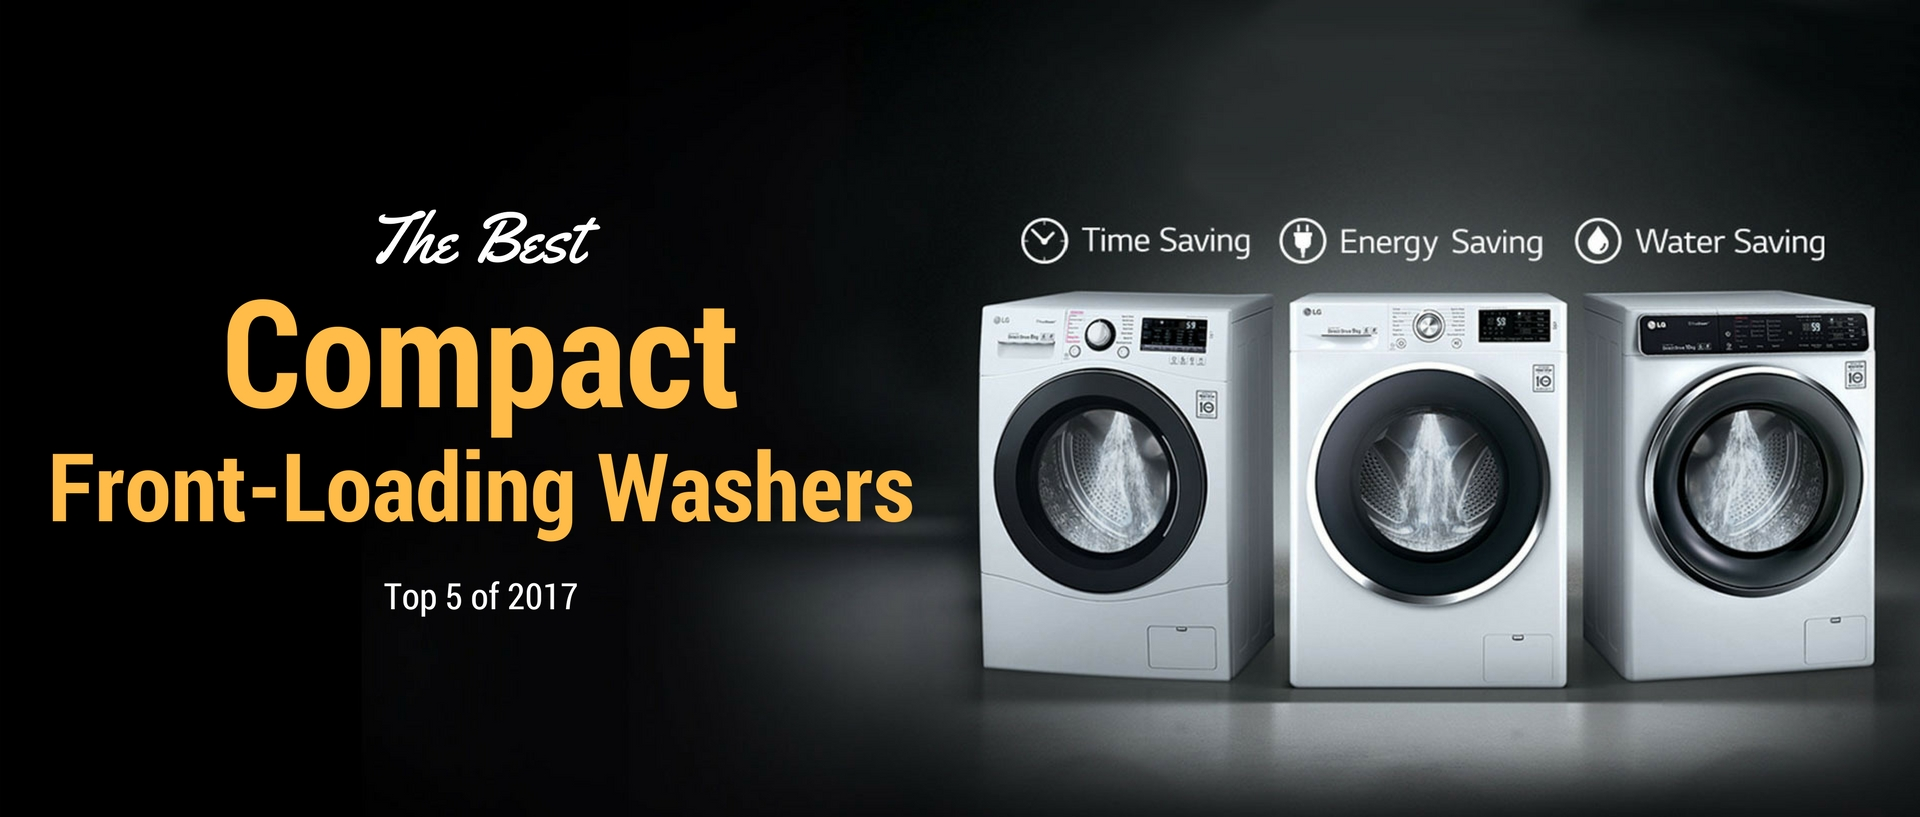 The Best Compact Front-Loading Washers of 2017 | Appliances ...